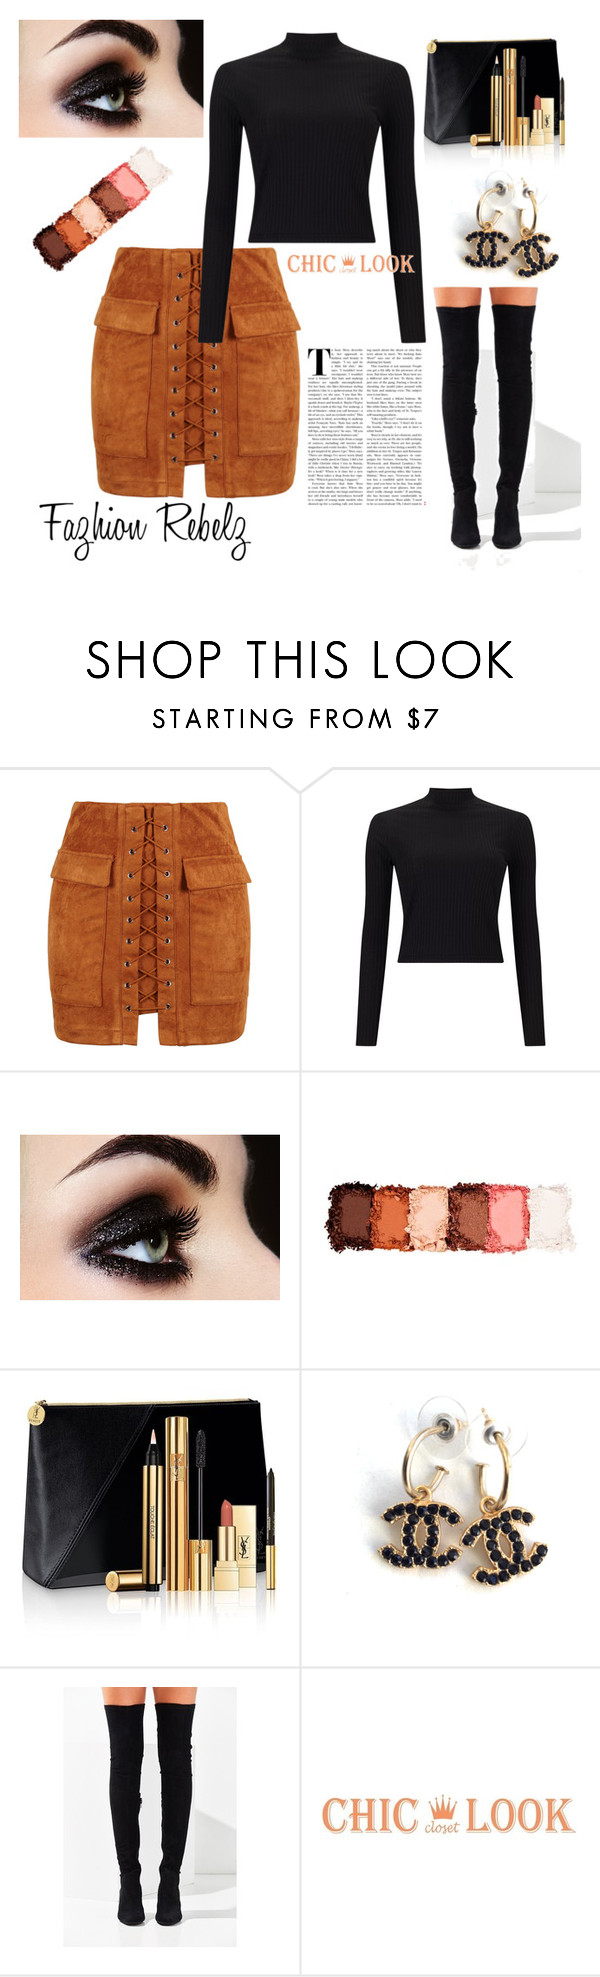 """""""Bold"""" by shaquanna-keith ❤ liked on Polyvore featuring WithChic, Miss Selfridge, NYX, Yves Saint Laurent, Chanel and Jeffrey Campbell"""